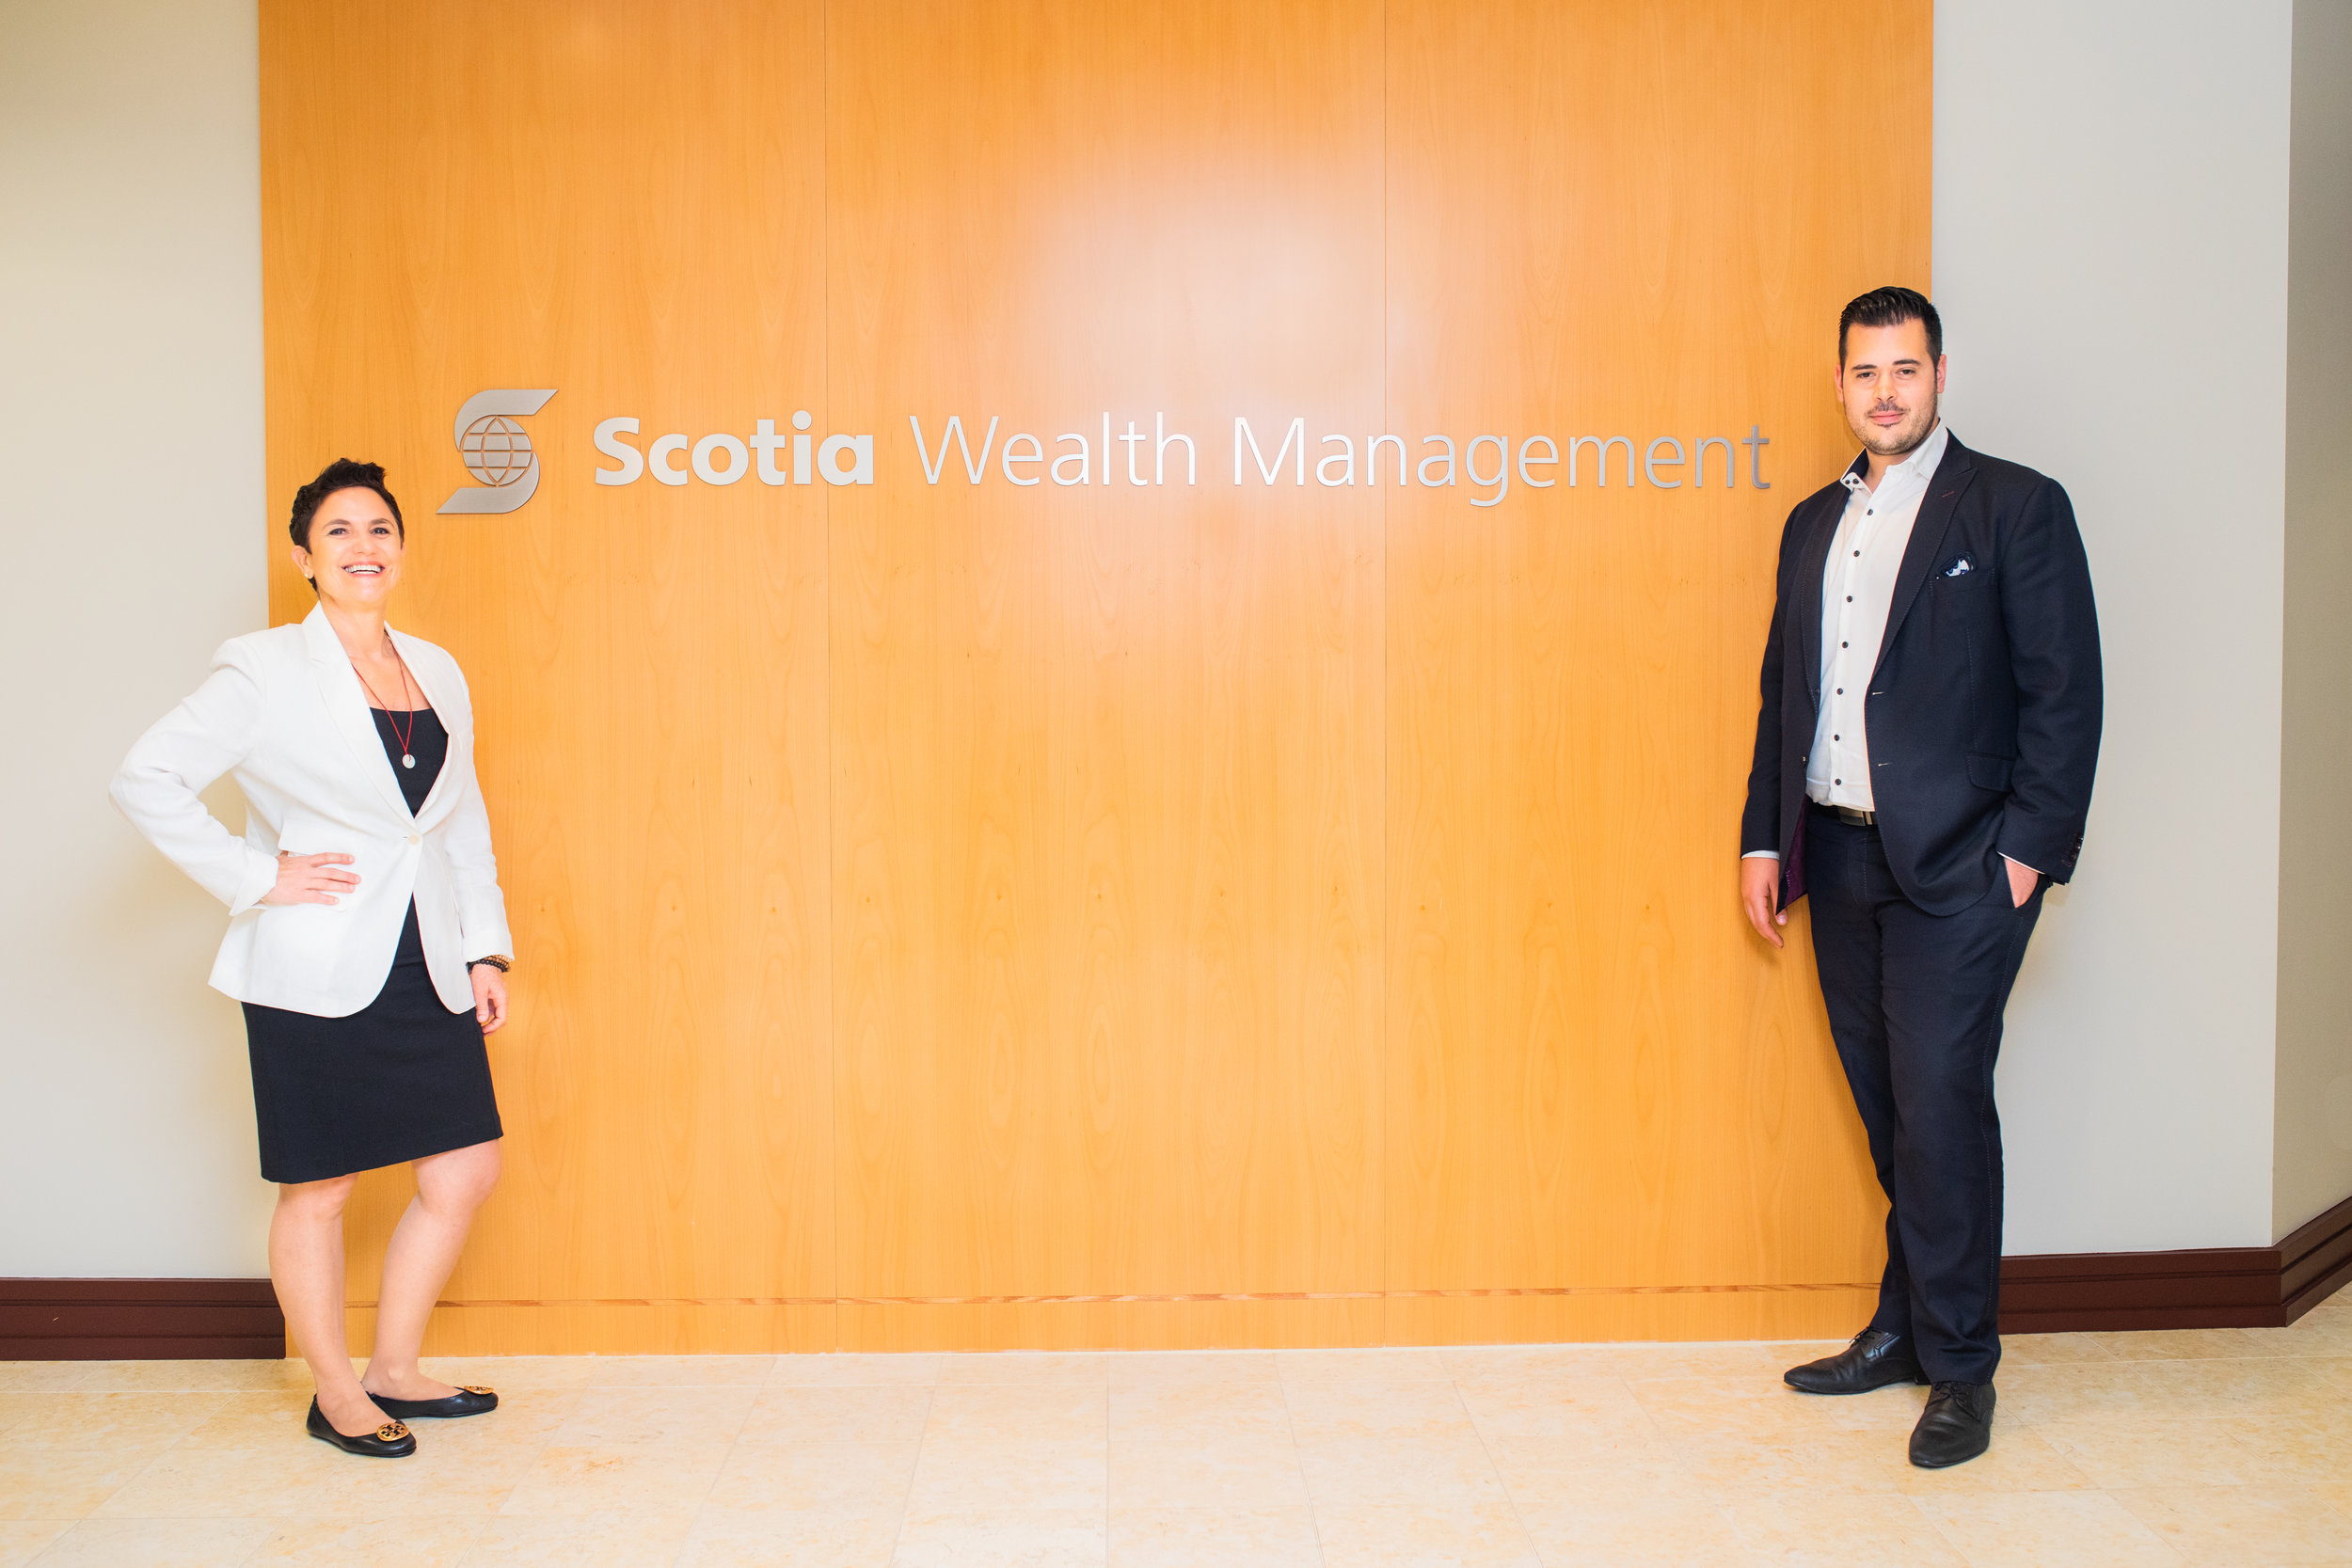 Scotia Wealth Financial Management 2019 wealth advisor Stephen Pietro Katia In Toronto Ontario Canada Investments Stocks Bonds Financial Planner Educator Speaker